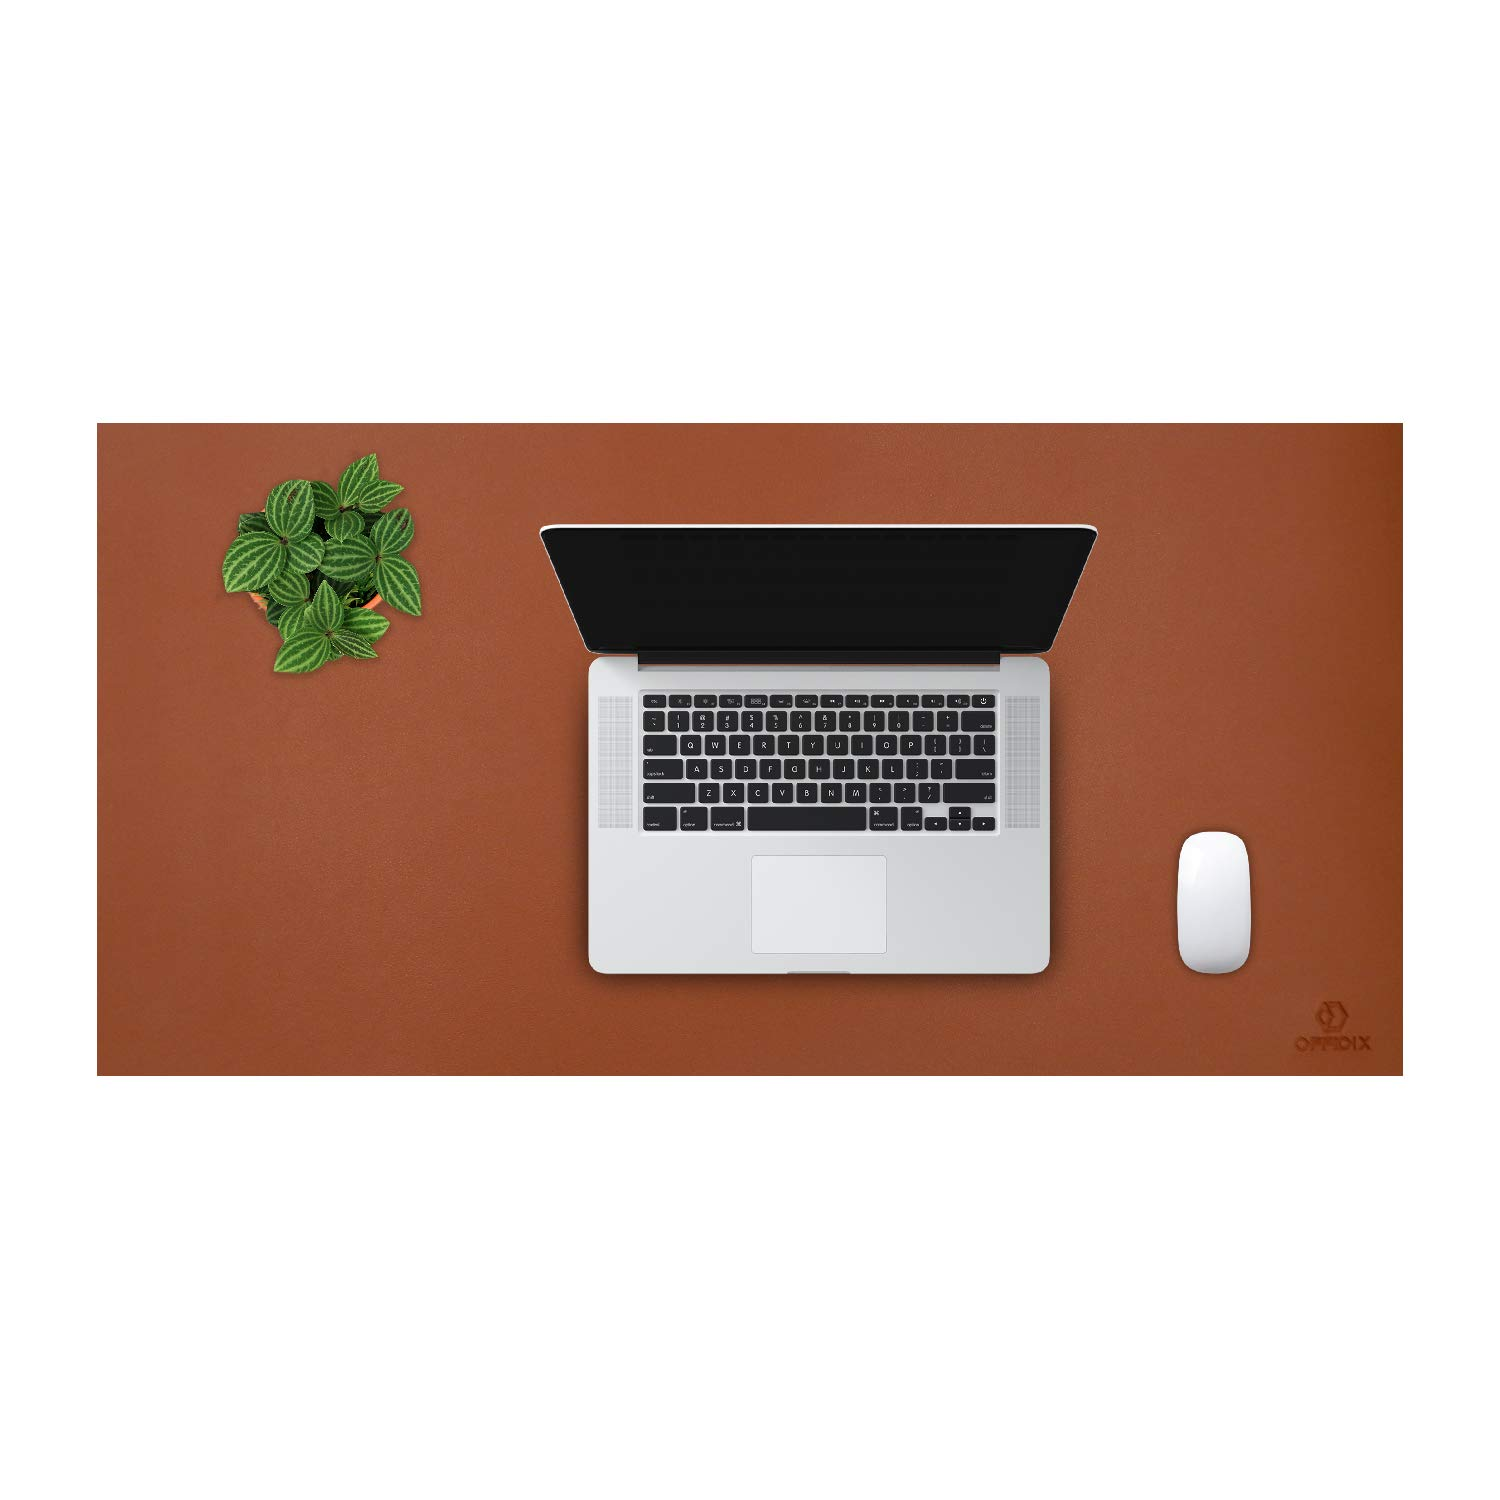 OFFIDIX Desk Mat PU Leather Desk Pad Protector Non-Slip PU Leather Protective Desk Pad Laptop Mat Gaming Writing Mat for Laptop PC Keyboard Office Home (Black-02)